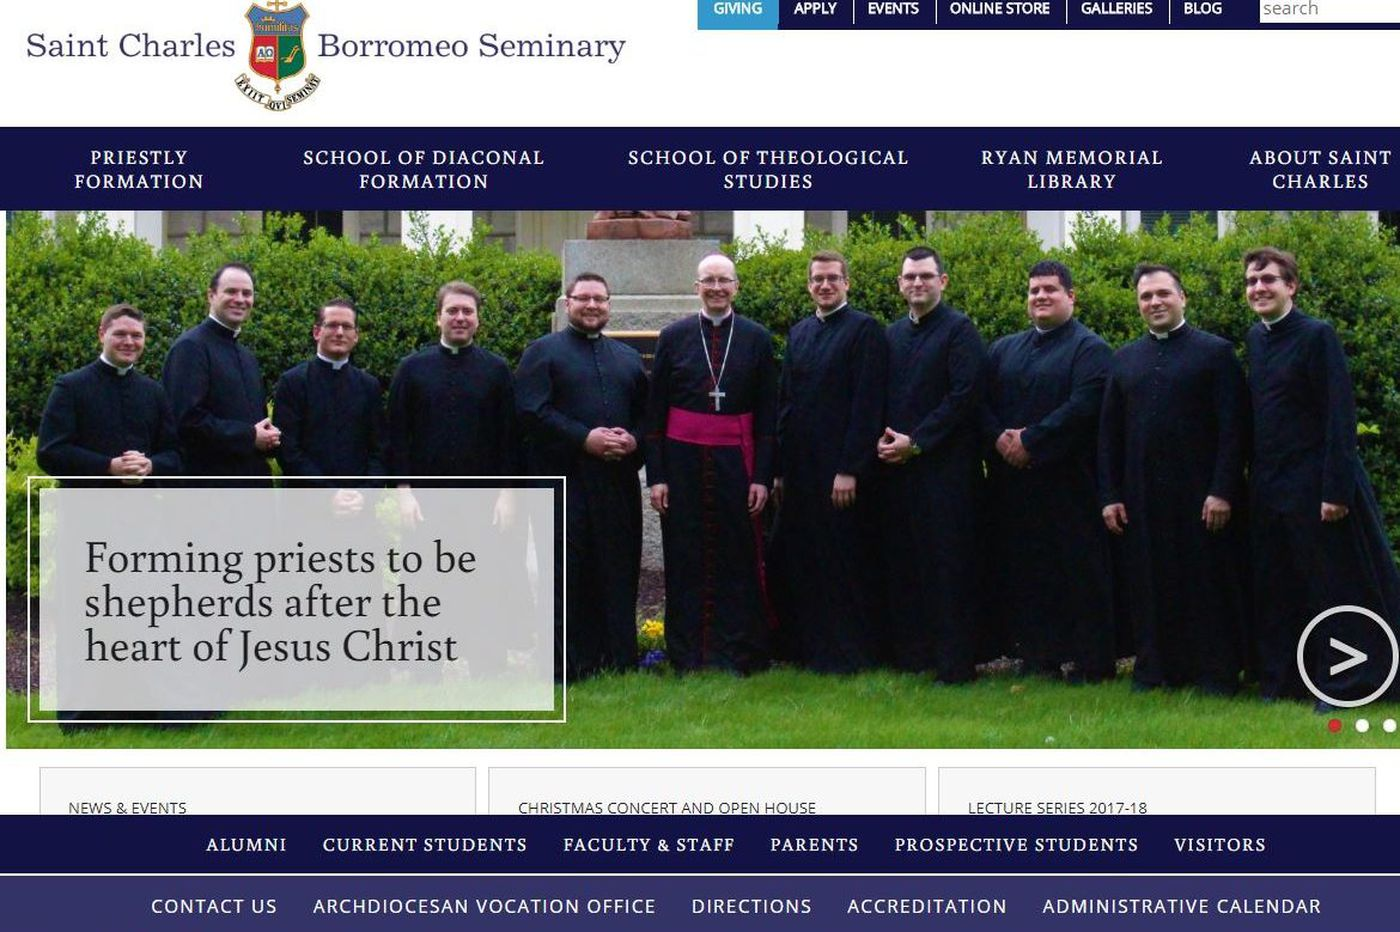 St. Charles Borromeo Seminary lost $2.6 million due to potential move and lawsuit's settlement